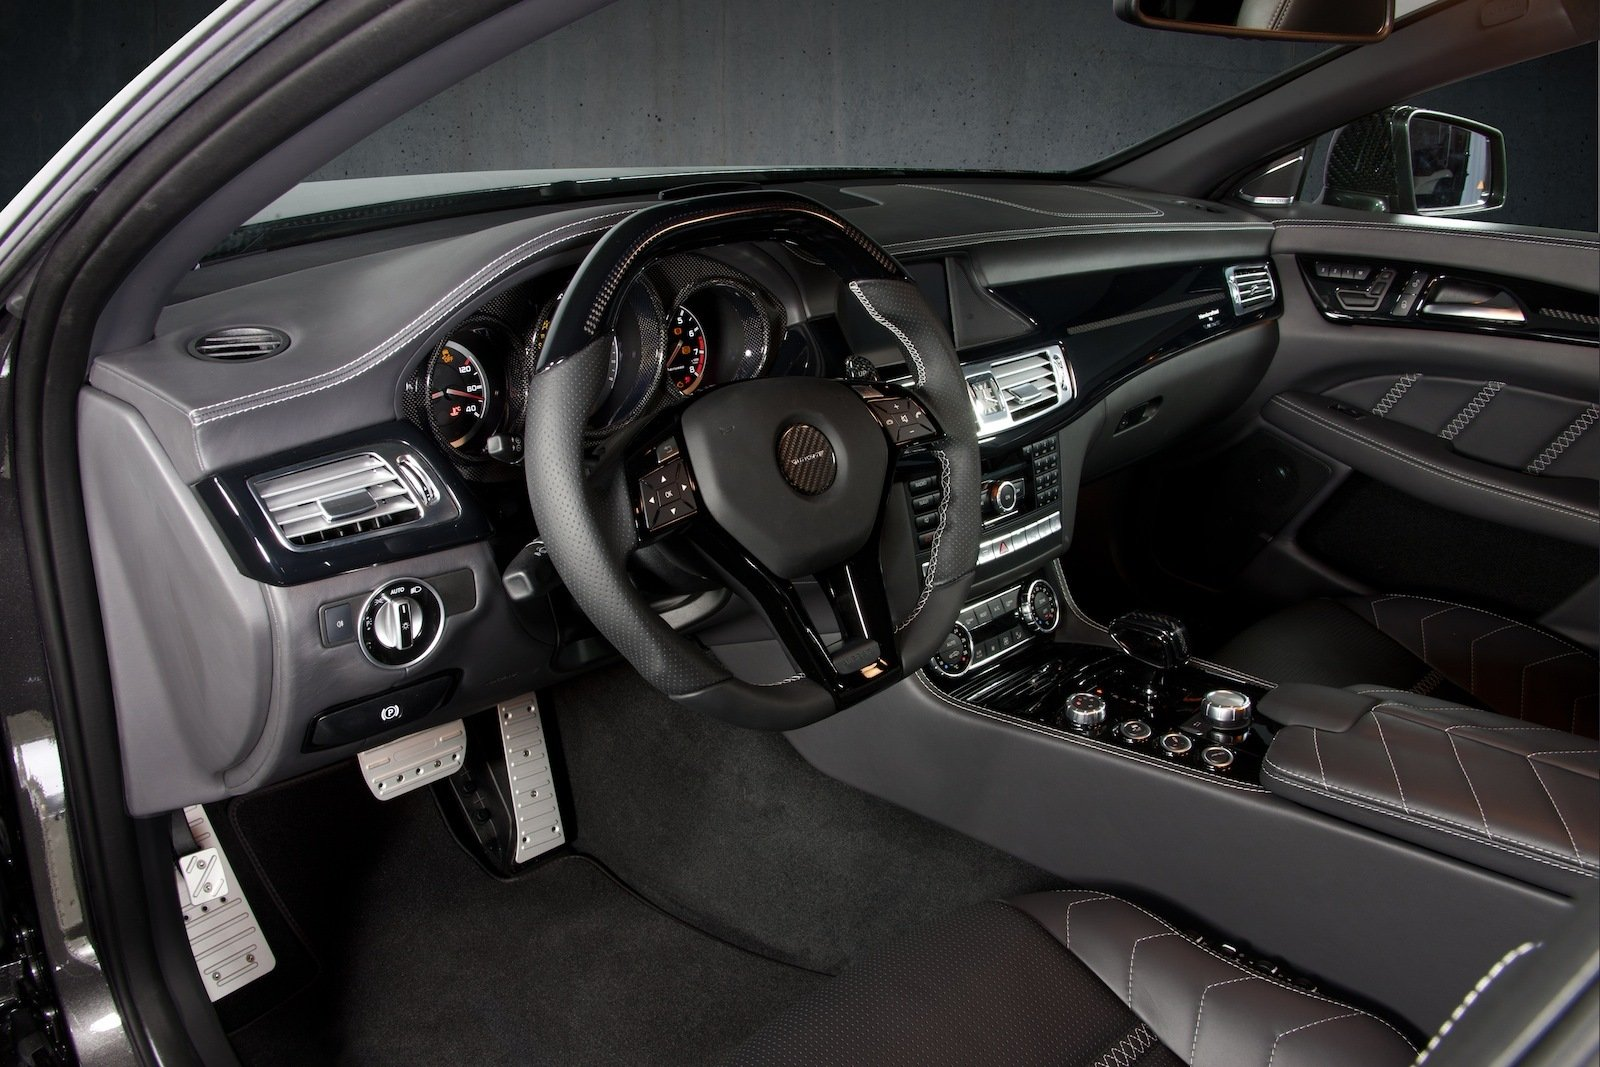 http://pictures.topspeed.com/IMG/crop/201203/2012-mercedes-cls63-amg-b_1600x0w.jpg